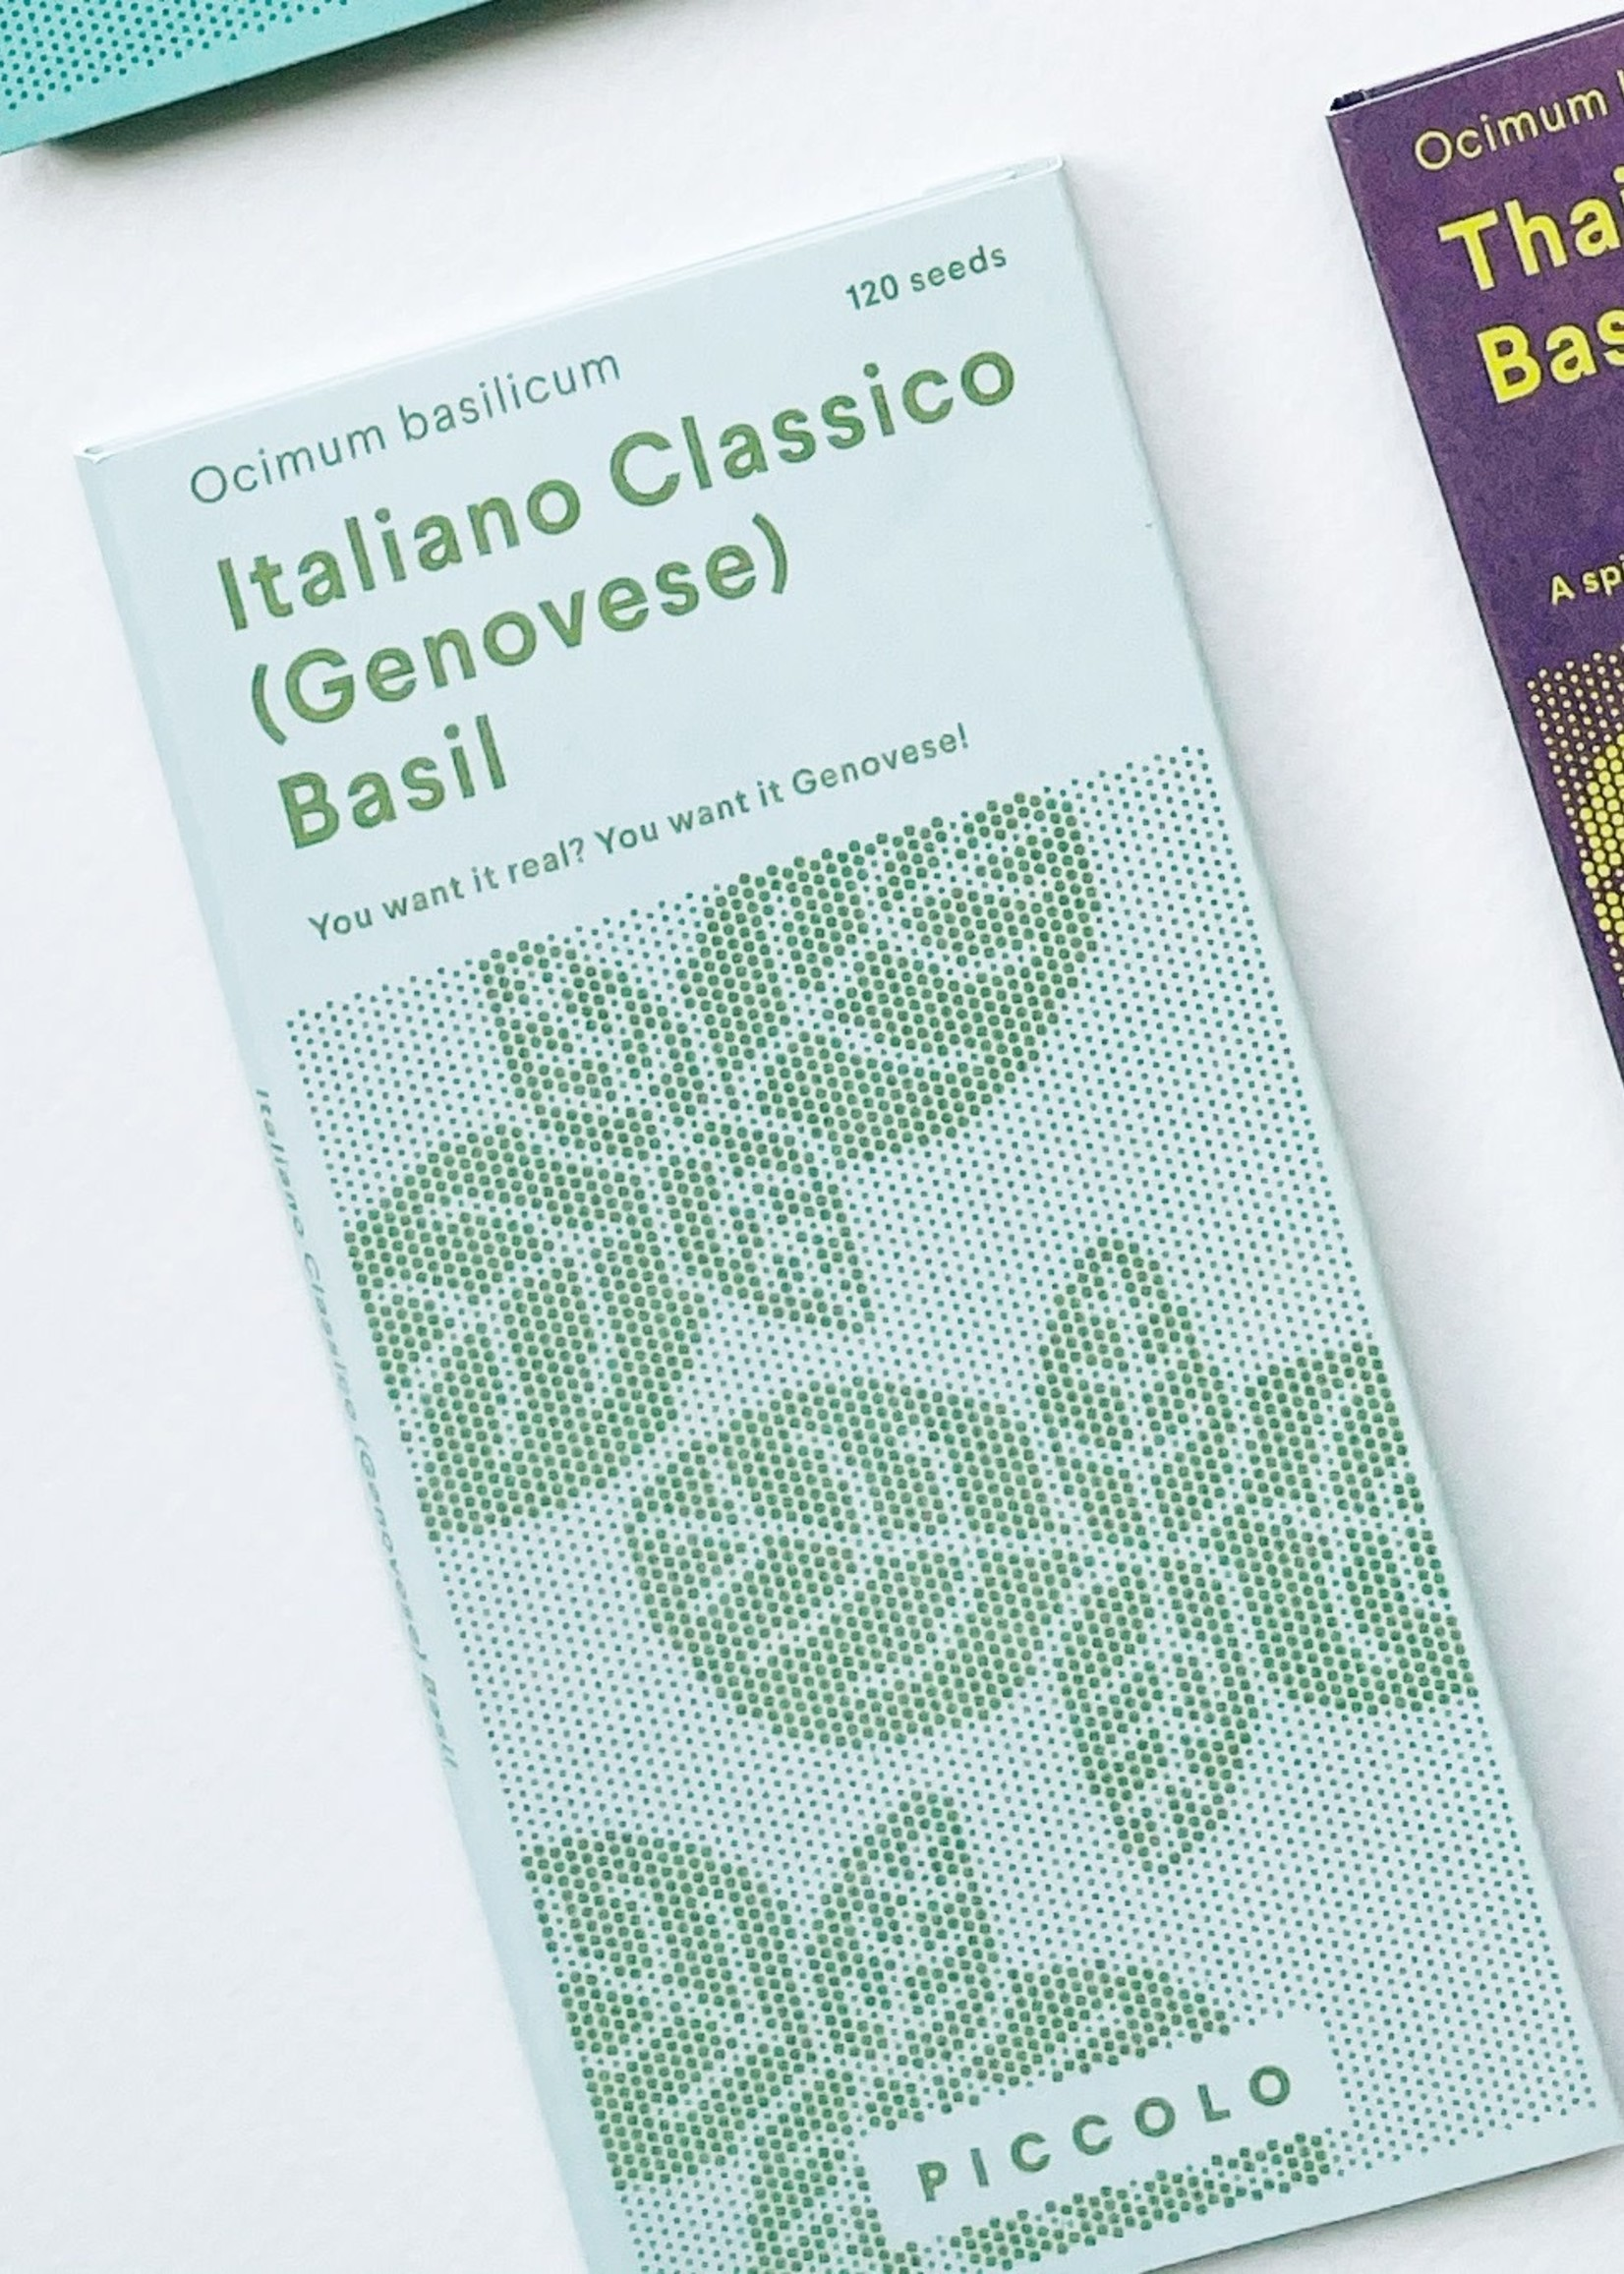 Piccolo Seeds Seed Packets: Herbs